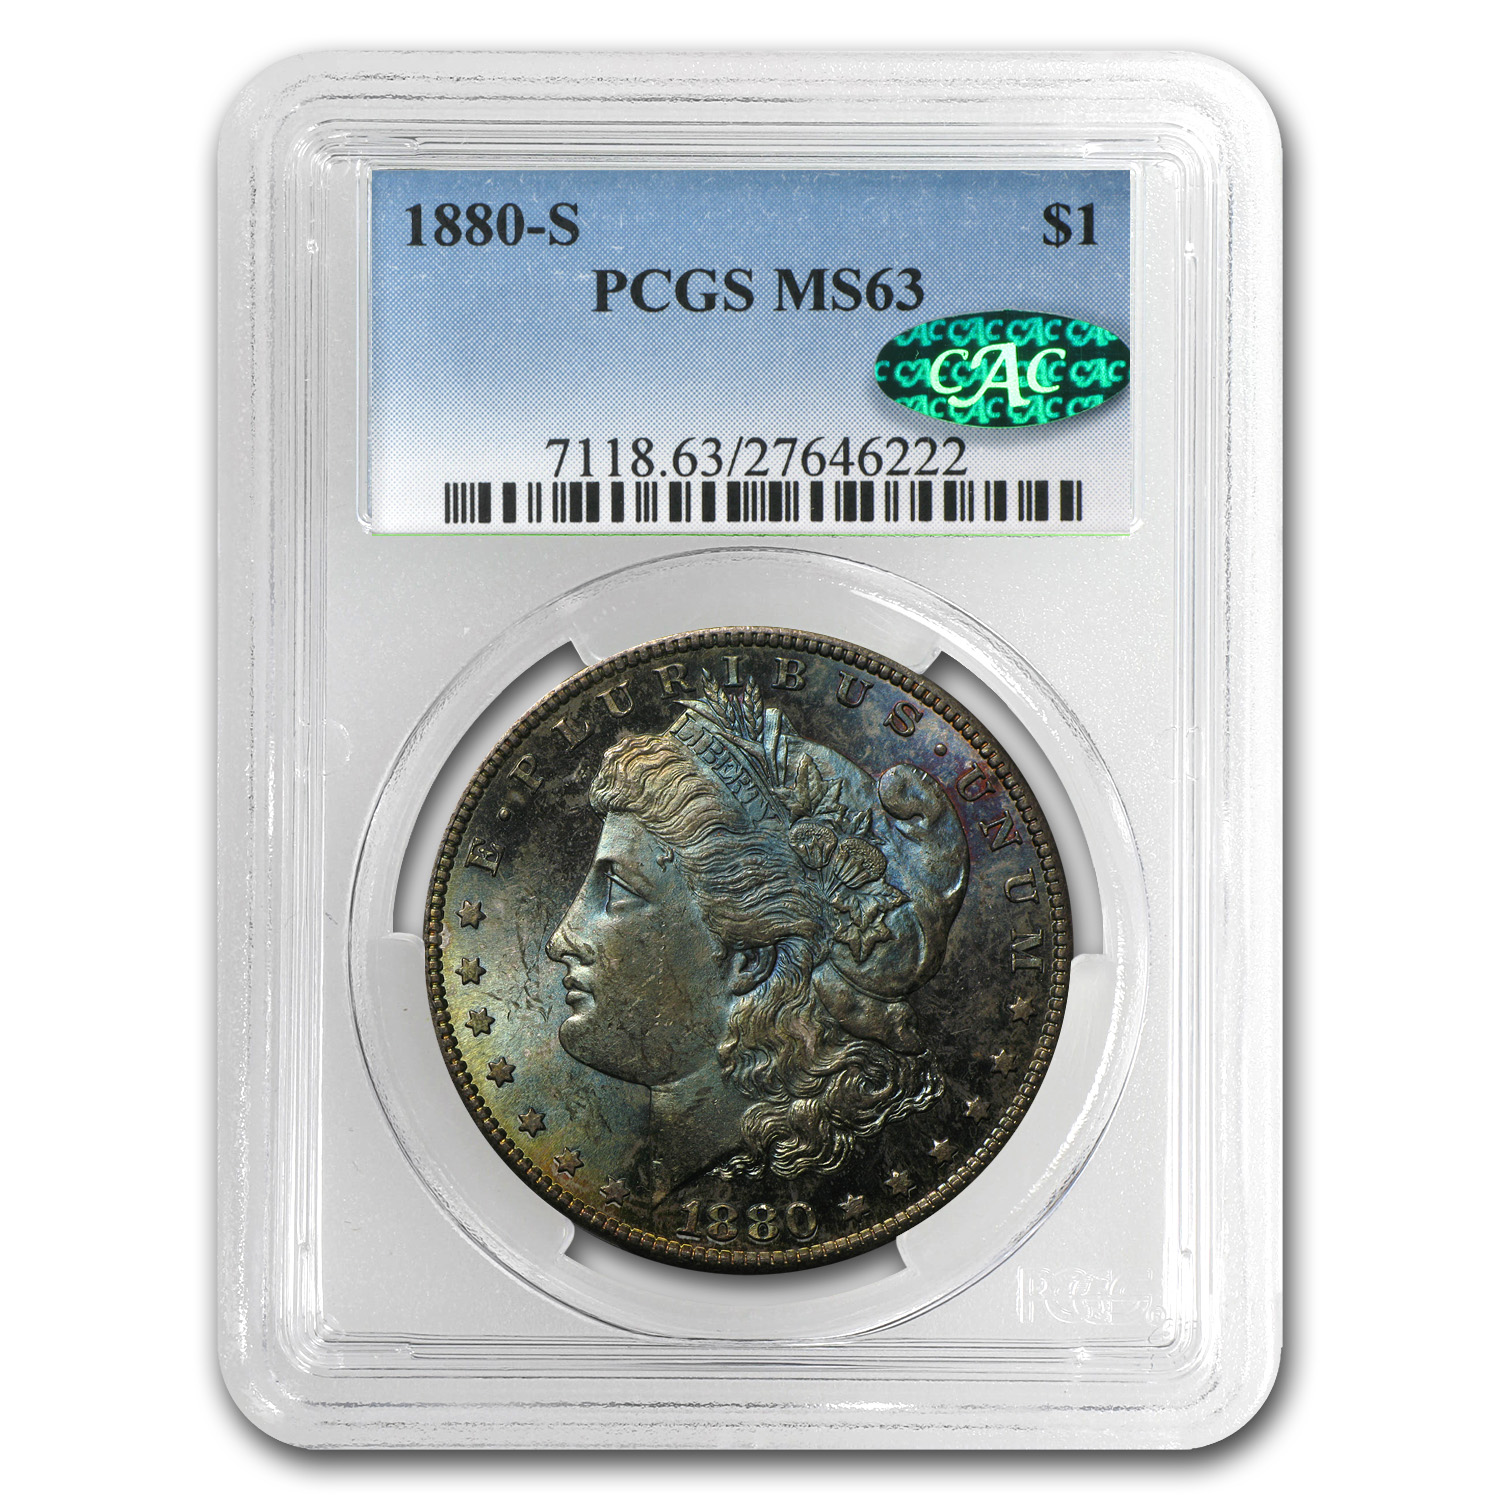 1880-S Morgan Dollar - MS-63 PCGS - Blue Obverse Toning CAC